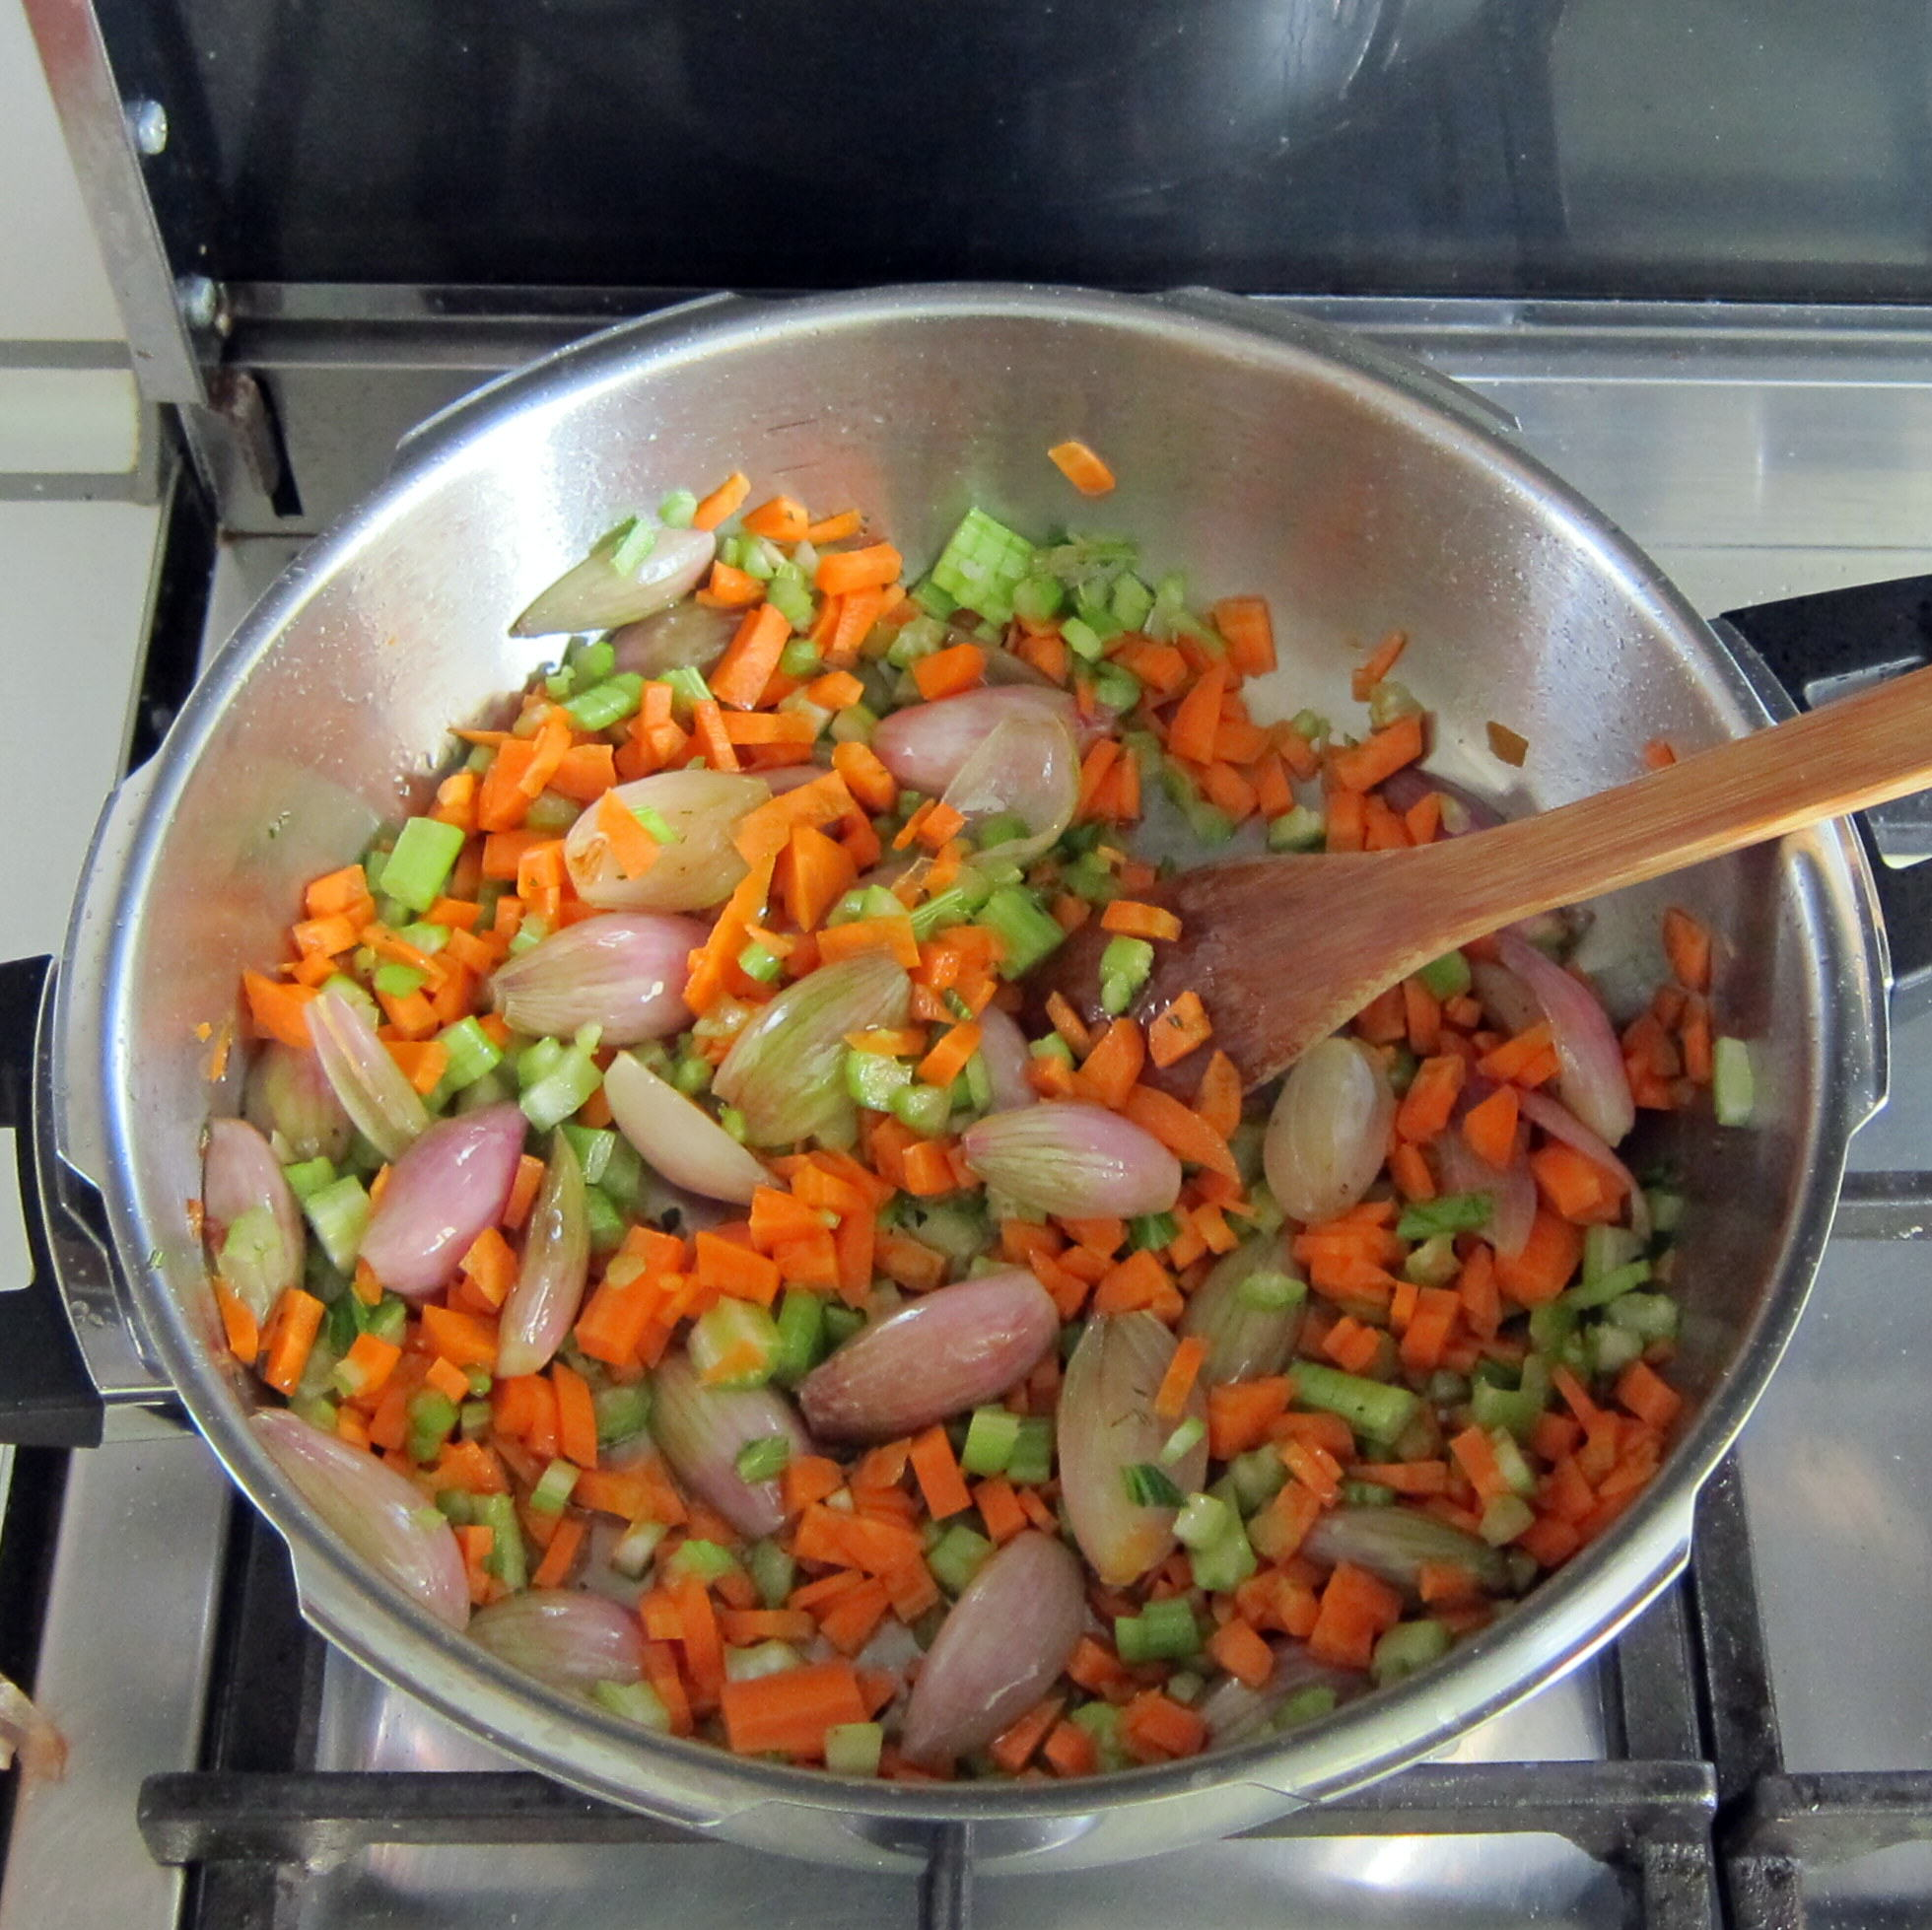 Mix-in shallots, celery and carrots. Saute until shallots are starting to soften.